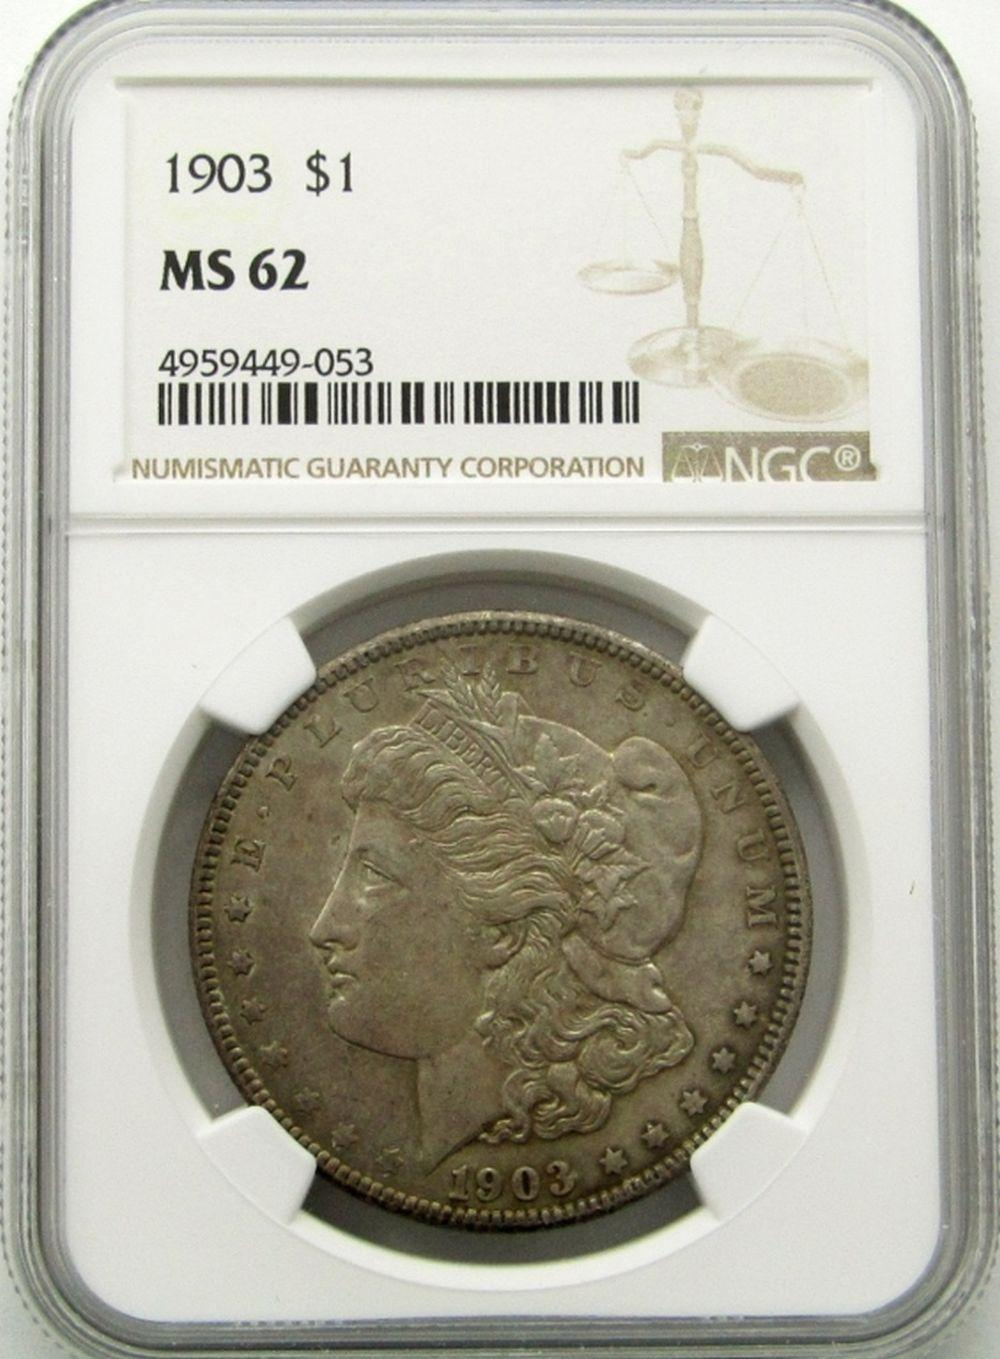 Lot 170: 1903-P Morgan Silver Dollar $ NGC MS 62